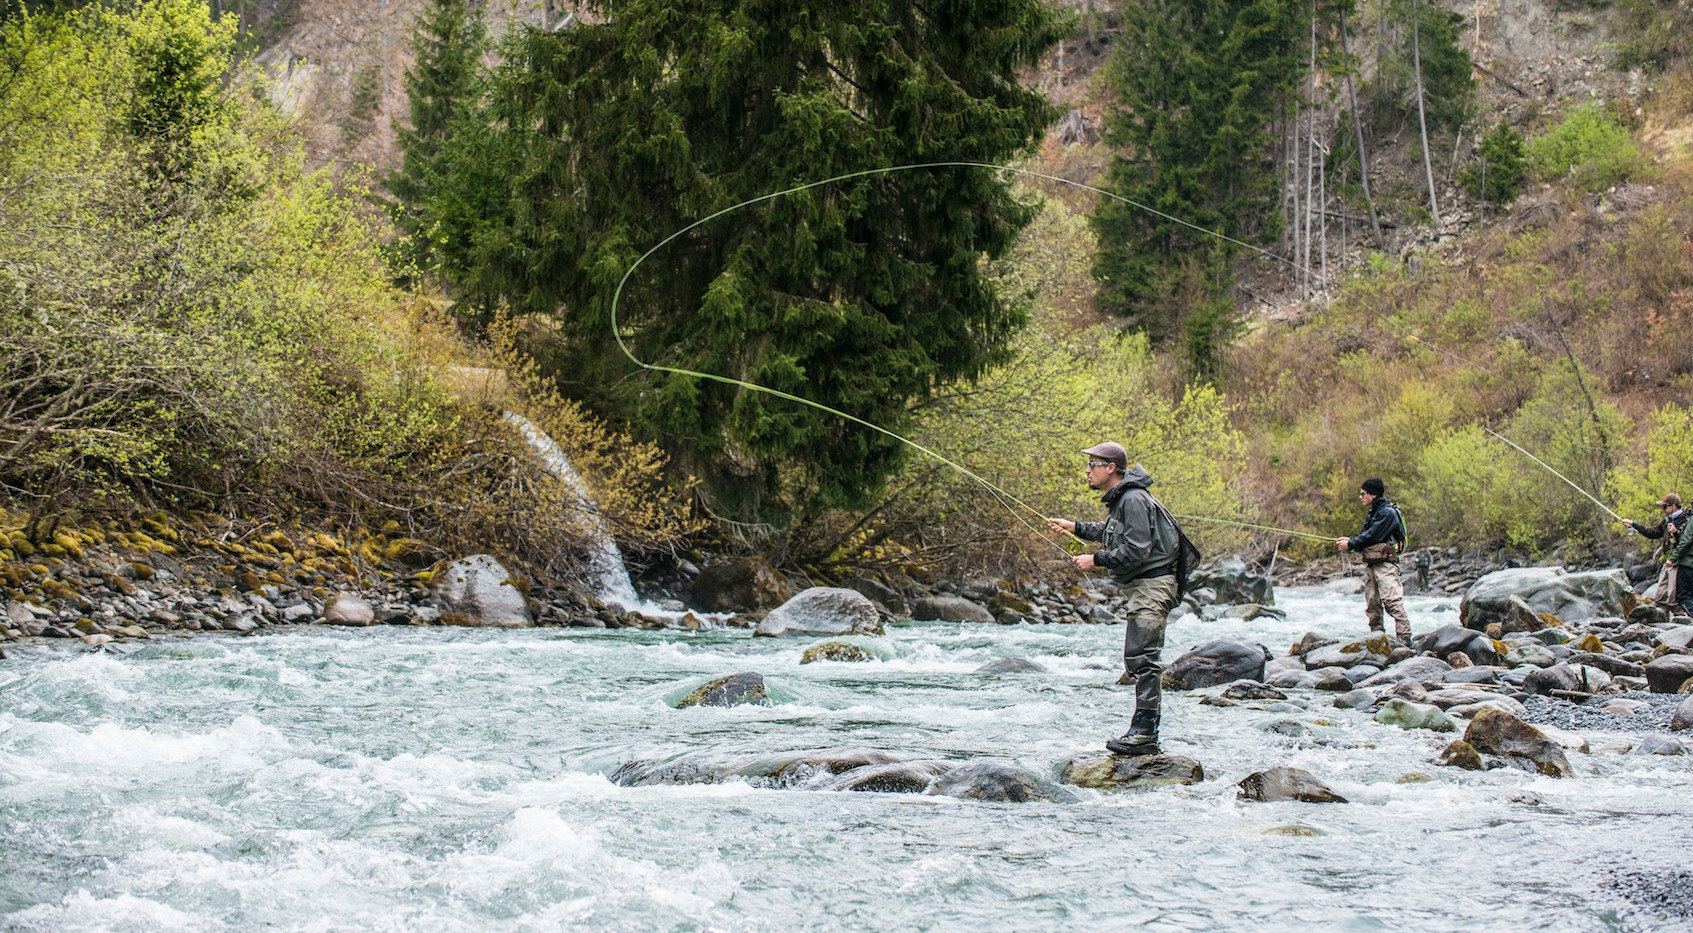 Flyfishing Engadine Fliegenfischen Engadin Guiding Catch and Release Unterengadin fischen Scuol Inn S-charl Renato Vitalini Rutenbau Rodbuilding Custom Fly Rod